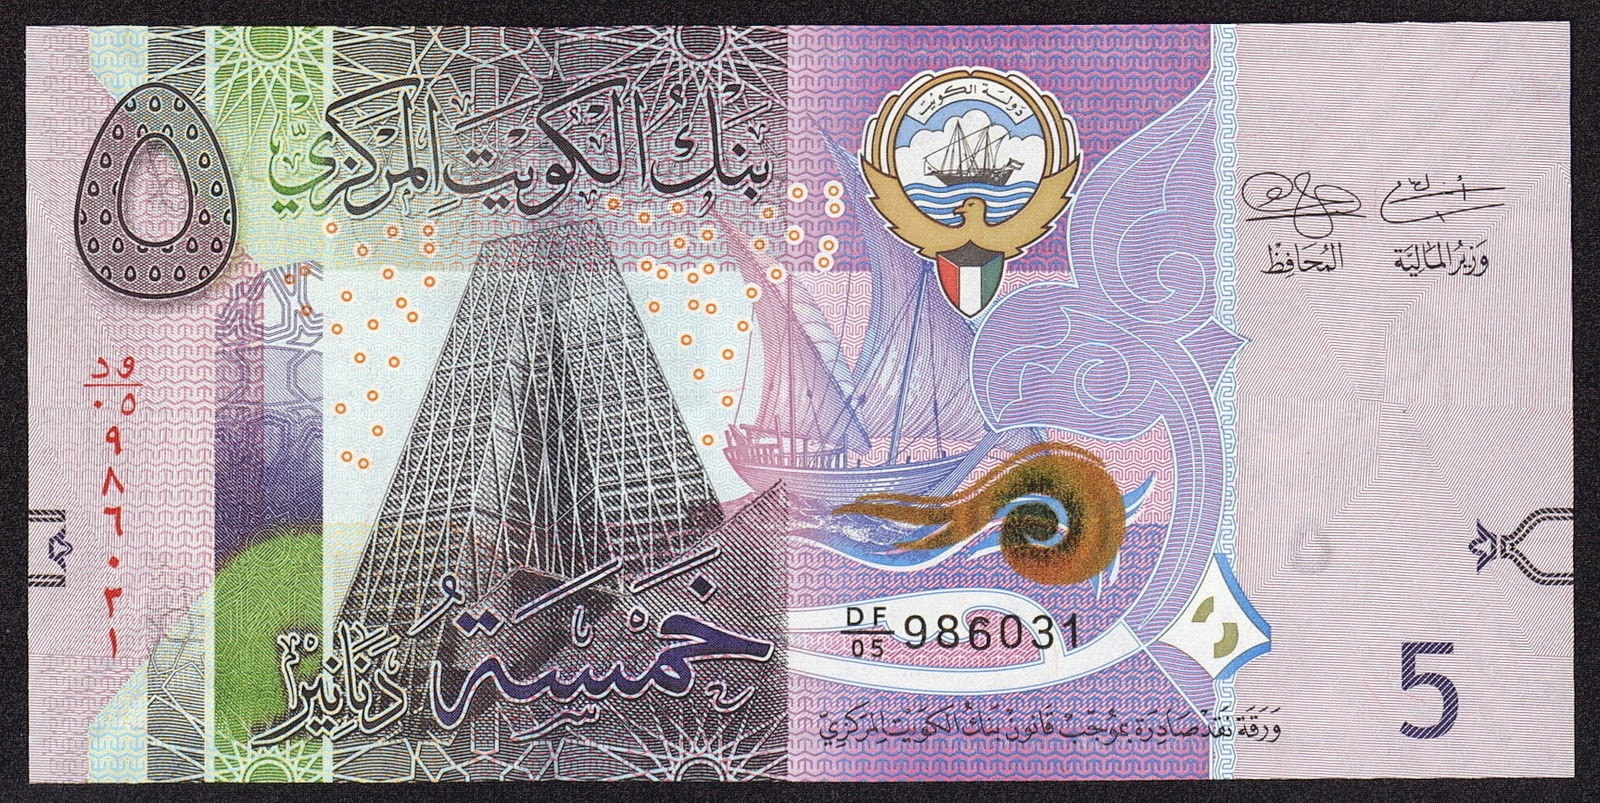 Kuwait New Banknotes 5 Dinars bank note 2014